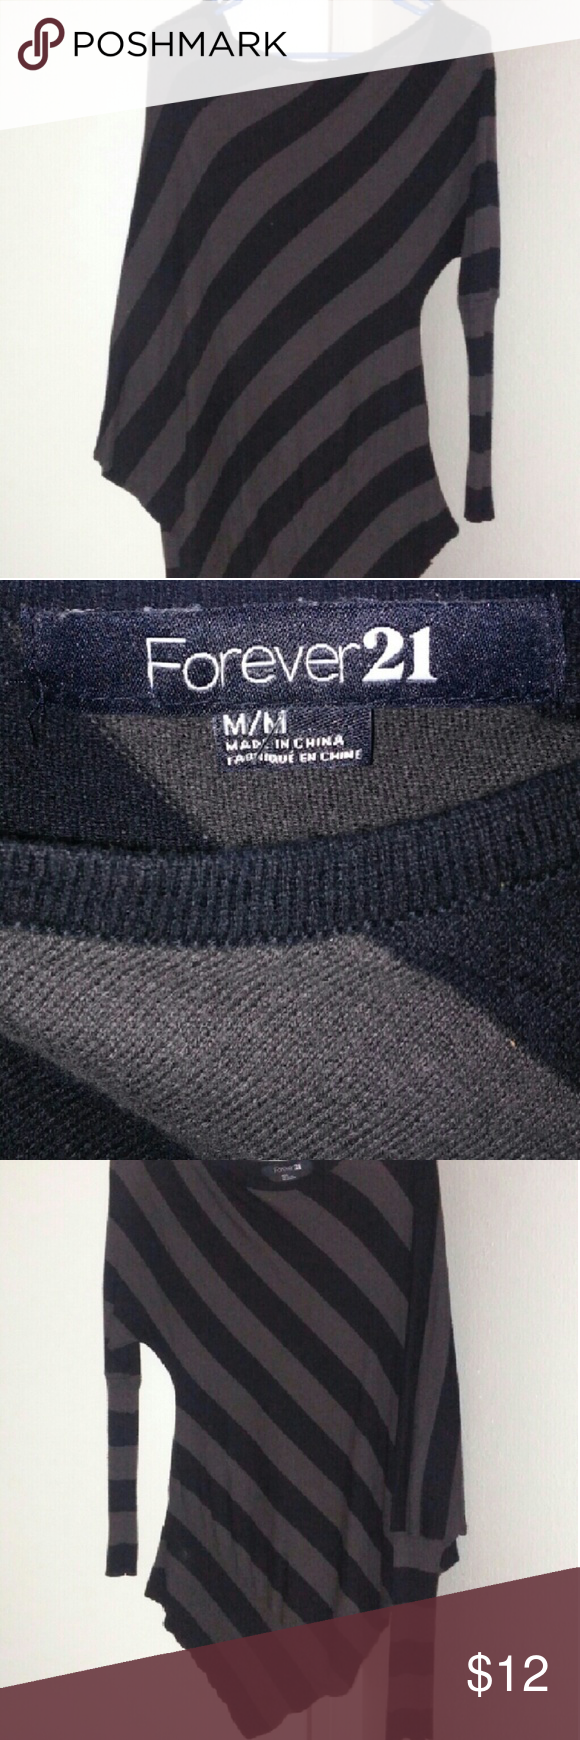 FOREVER 21 SWEATER Grey/Black Sweater *EUC* Size Medium Forever 21 Sweaters Cardigans